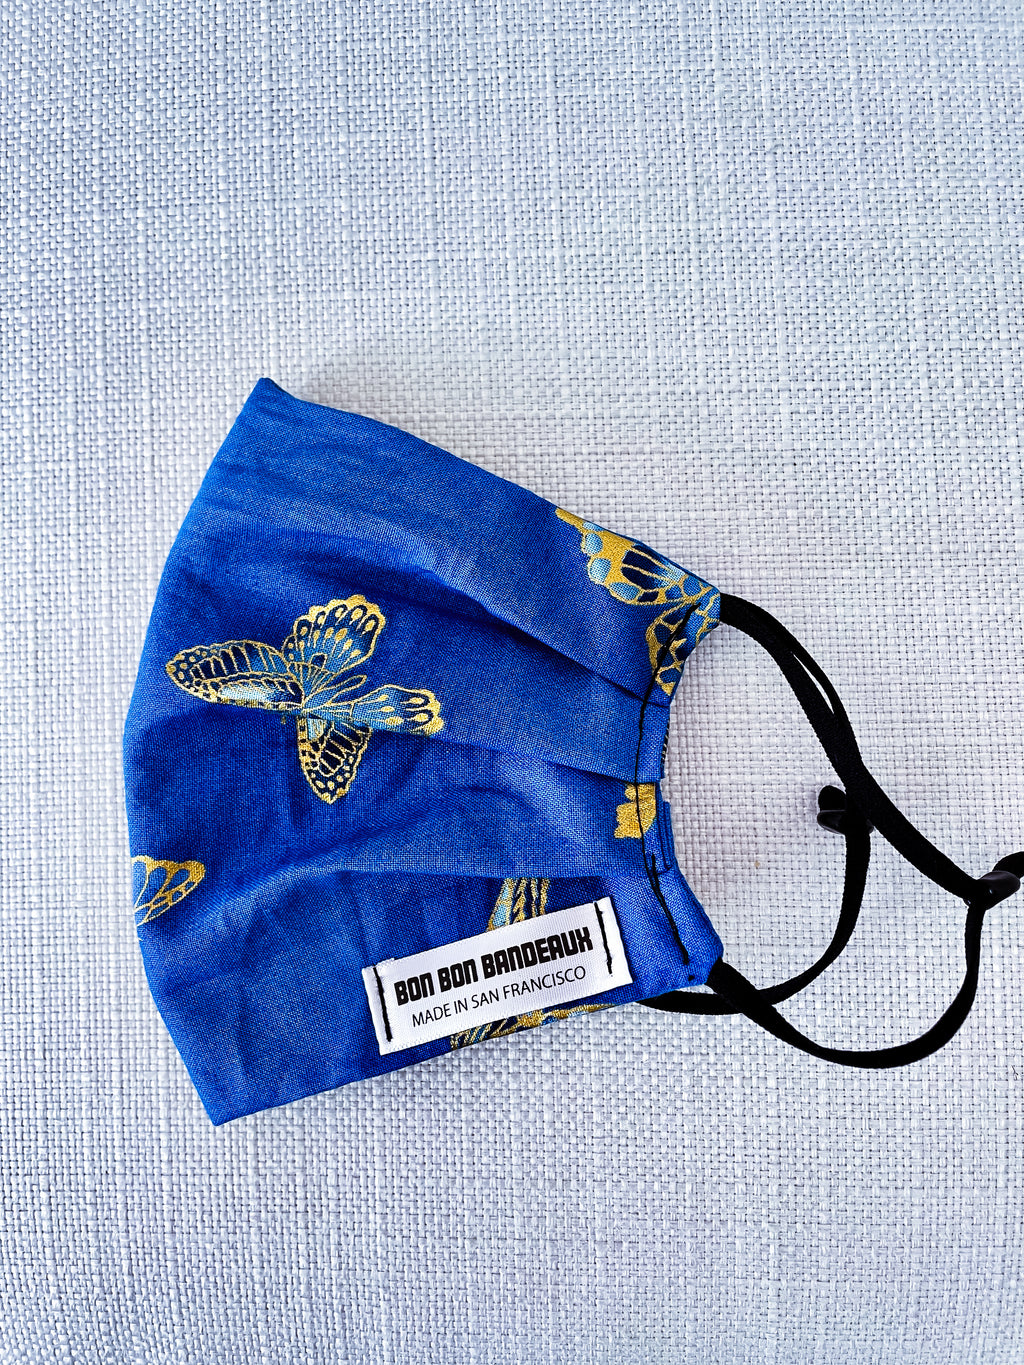 Adjustable Size Face Mask (Blue Mariposa)